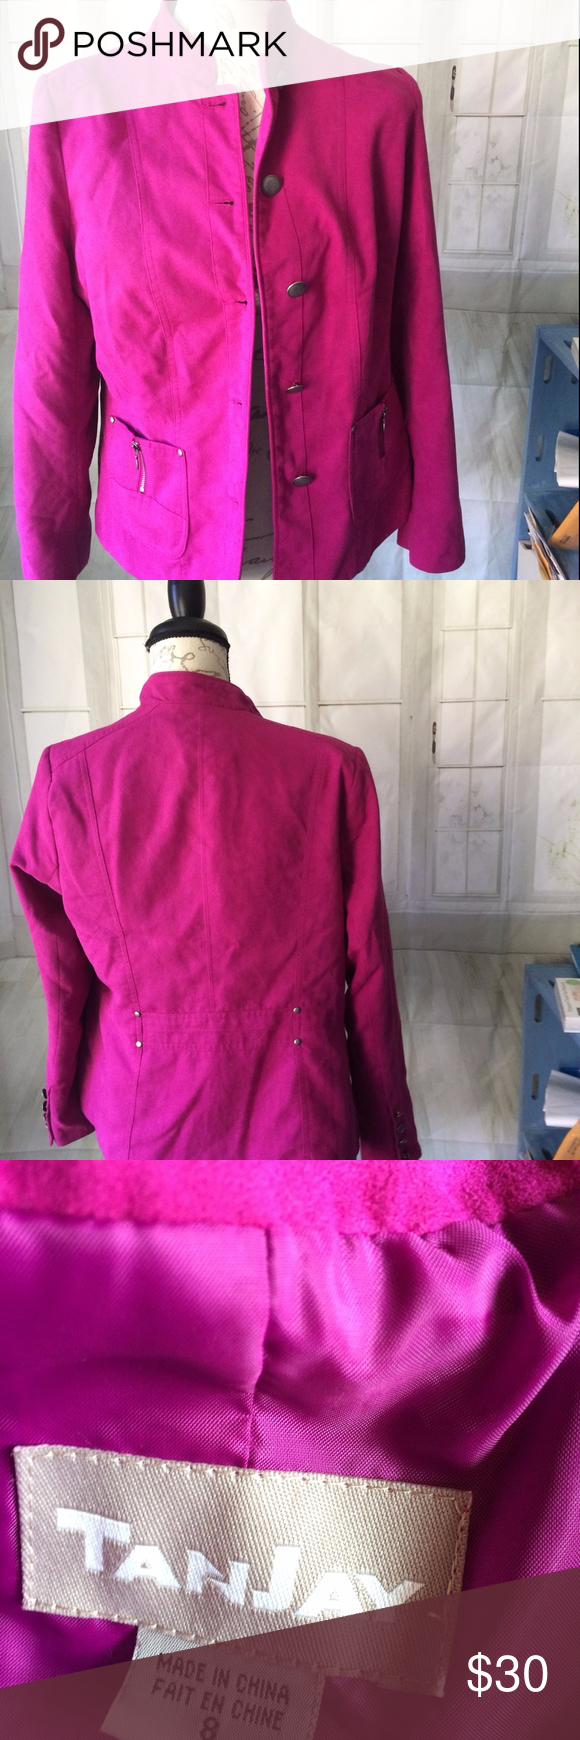 Final   TanJay Magenta Faux Suede Blazer 8 Long sleeve jacket in a very  rich color 514025f97